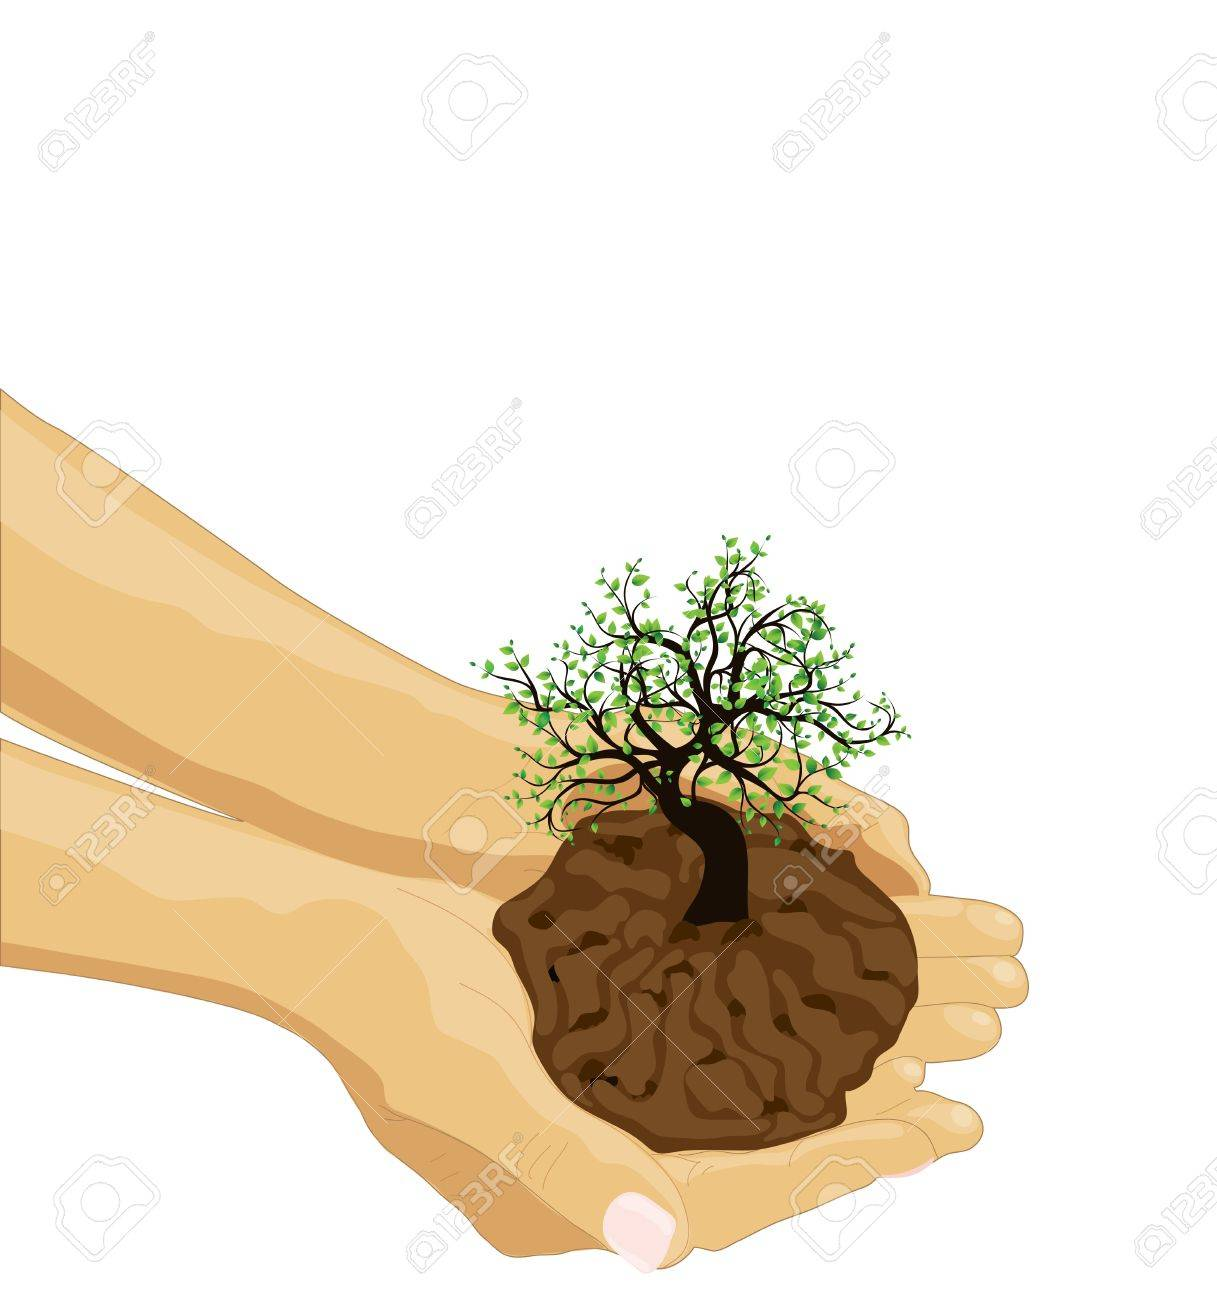 Tree in palm of hand Stock Vector - 14059924